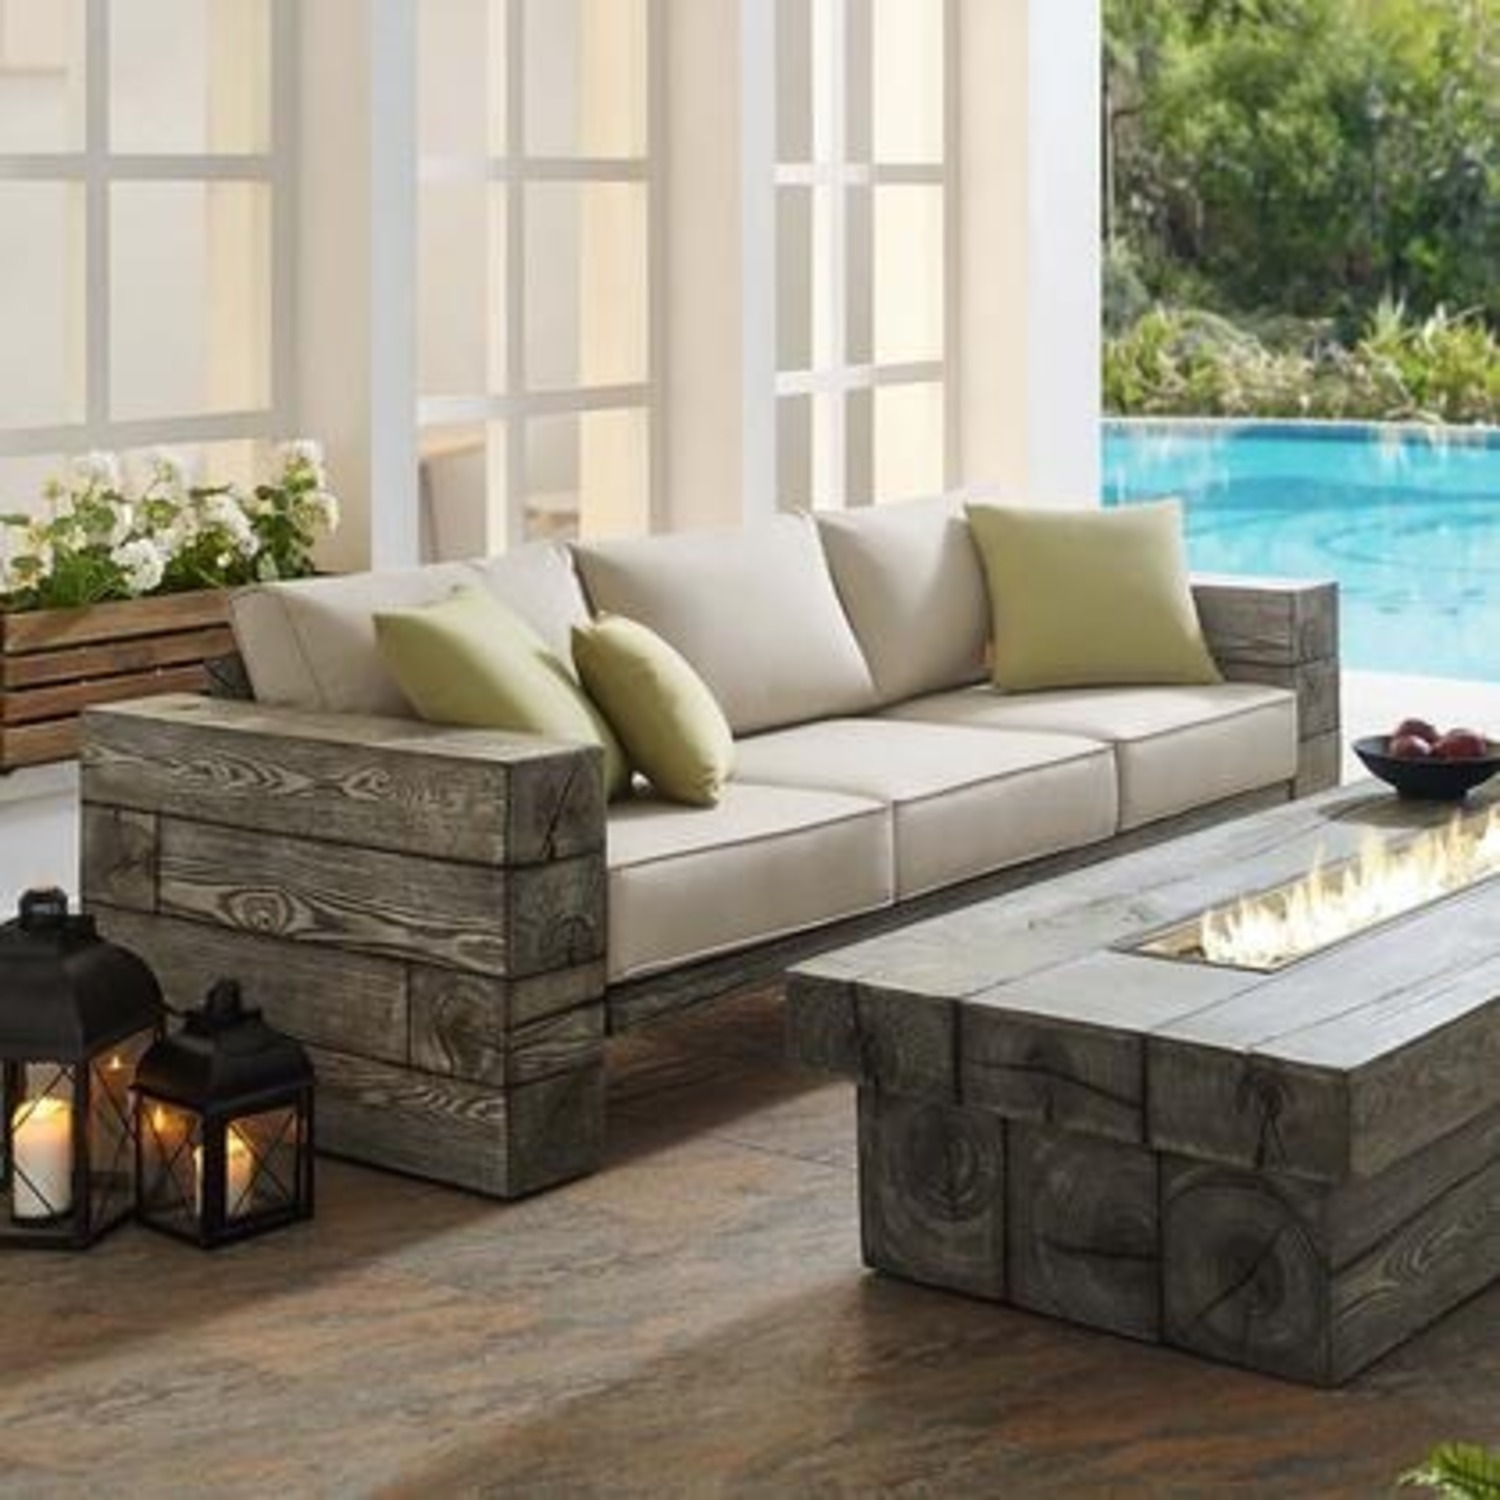 Outdoor Patio Sofa In Light Gray Beige Fabric - image-3